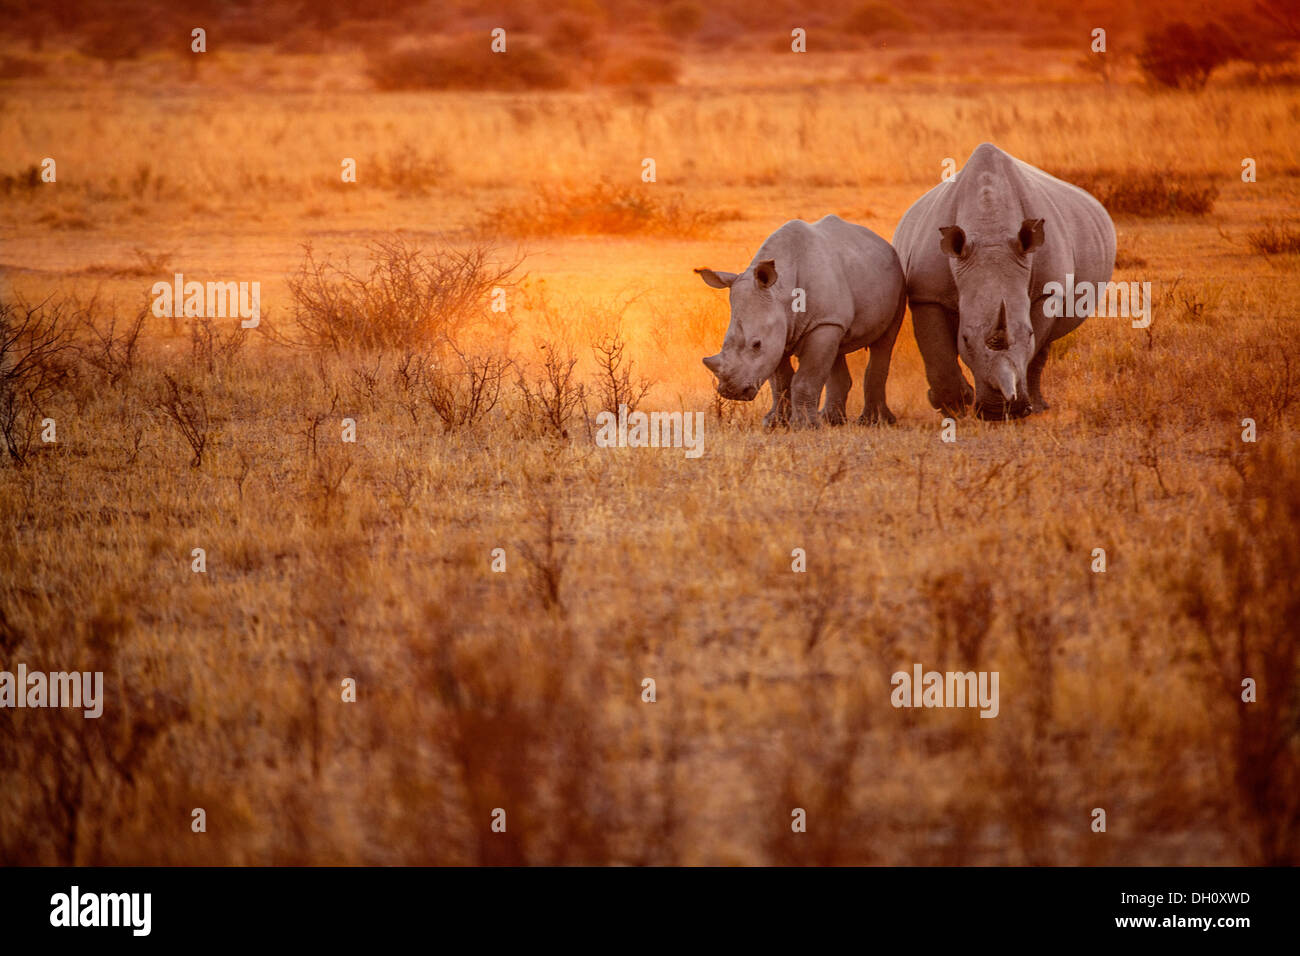 Rhino's in a sunset - Stock Image